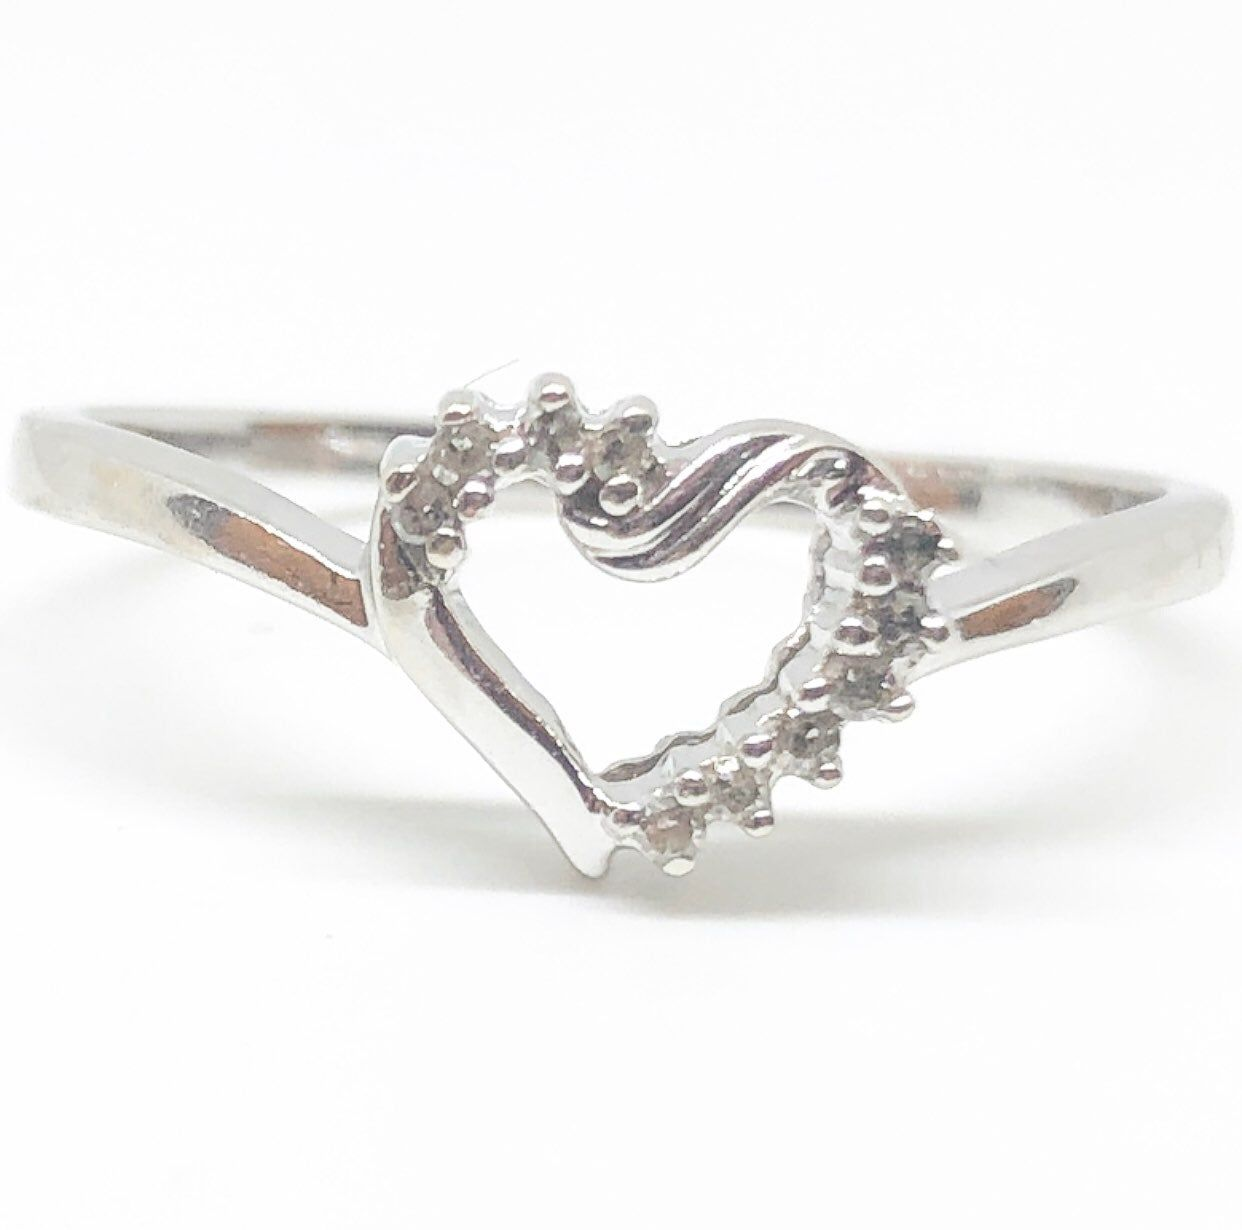 This Is An Absolutely Beautiful Genuine Natural Diamond Heart Ring In Solid 10k White Gold Size 7 T Diamond Heart Ring Kay Jewelers Rings White Gold Diamonds